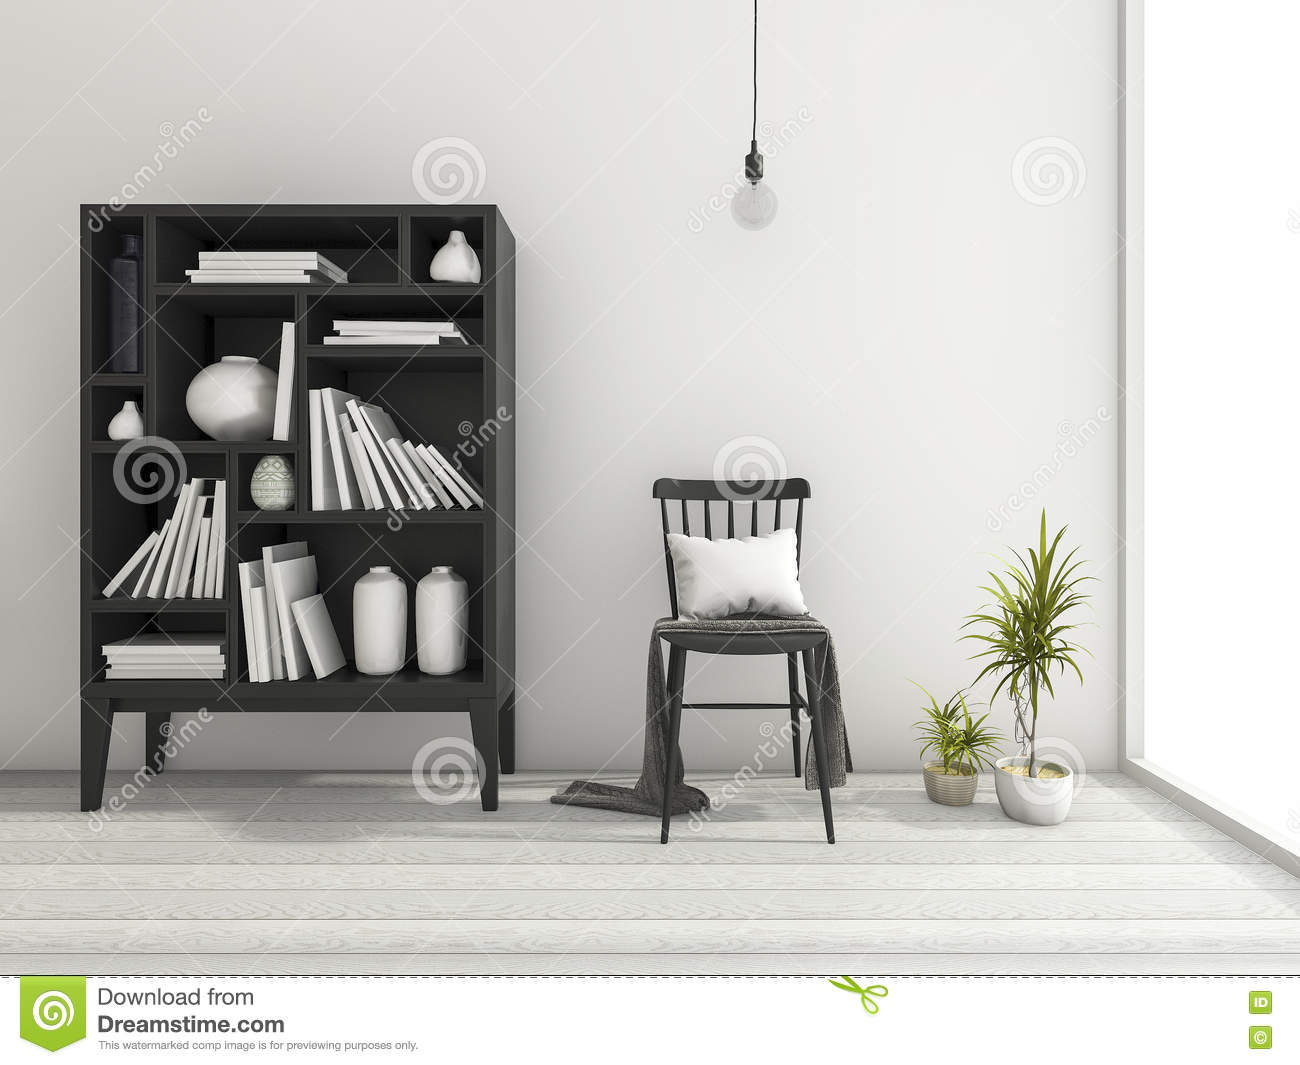 Download 3d Rendering Vintage Minimal Living Room With Shelf Decor And Beautiful  Design Chair Near The